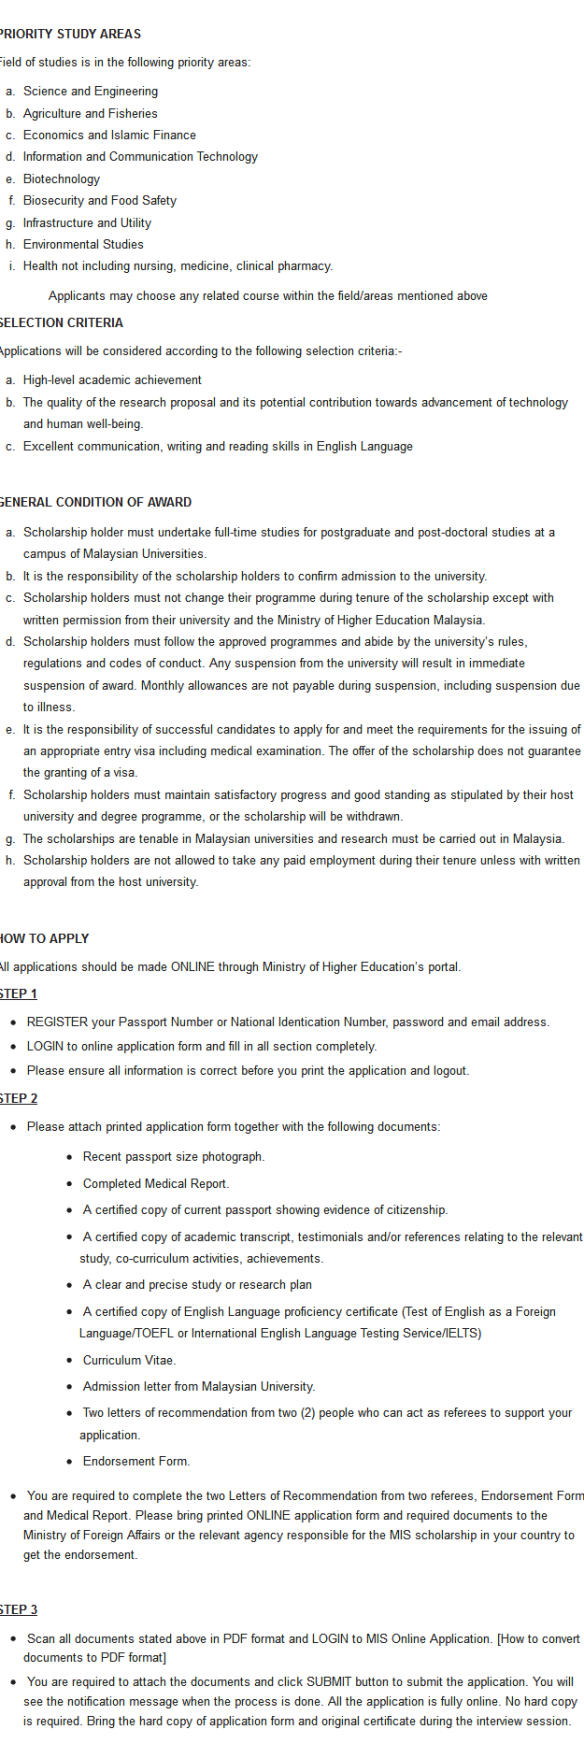 Malaysia International Scholarships for Foreign Students